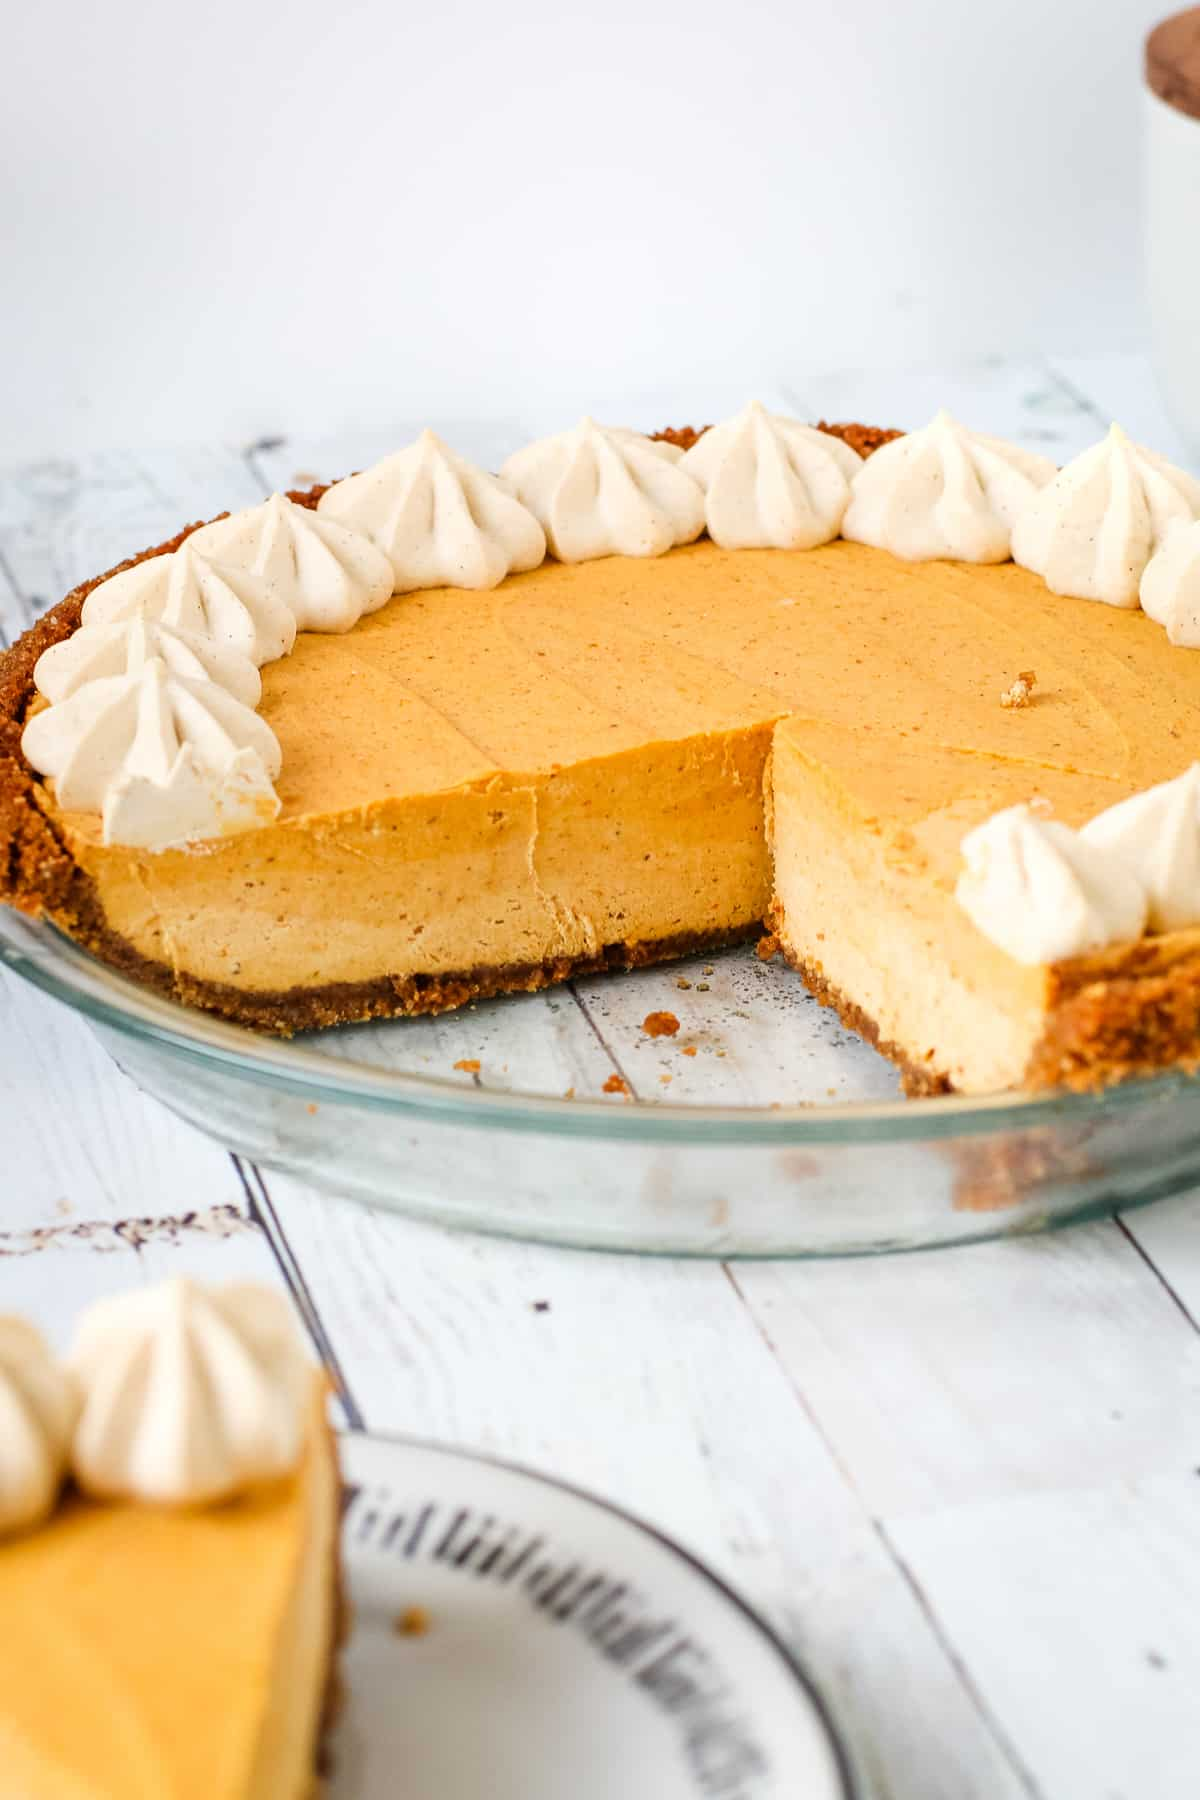 Pumpkin pie with heavy whipped cream recipe with a slice taken out of it.